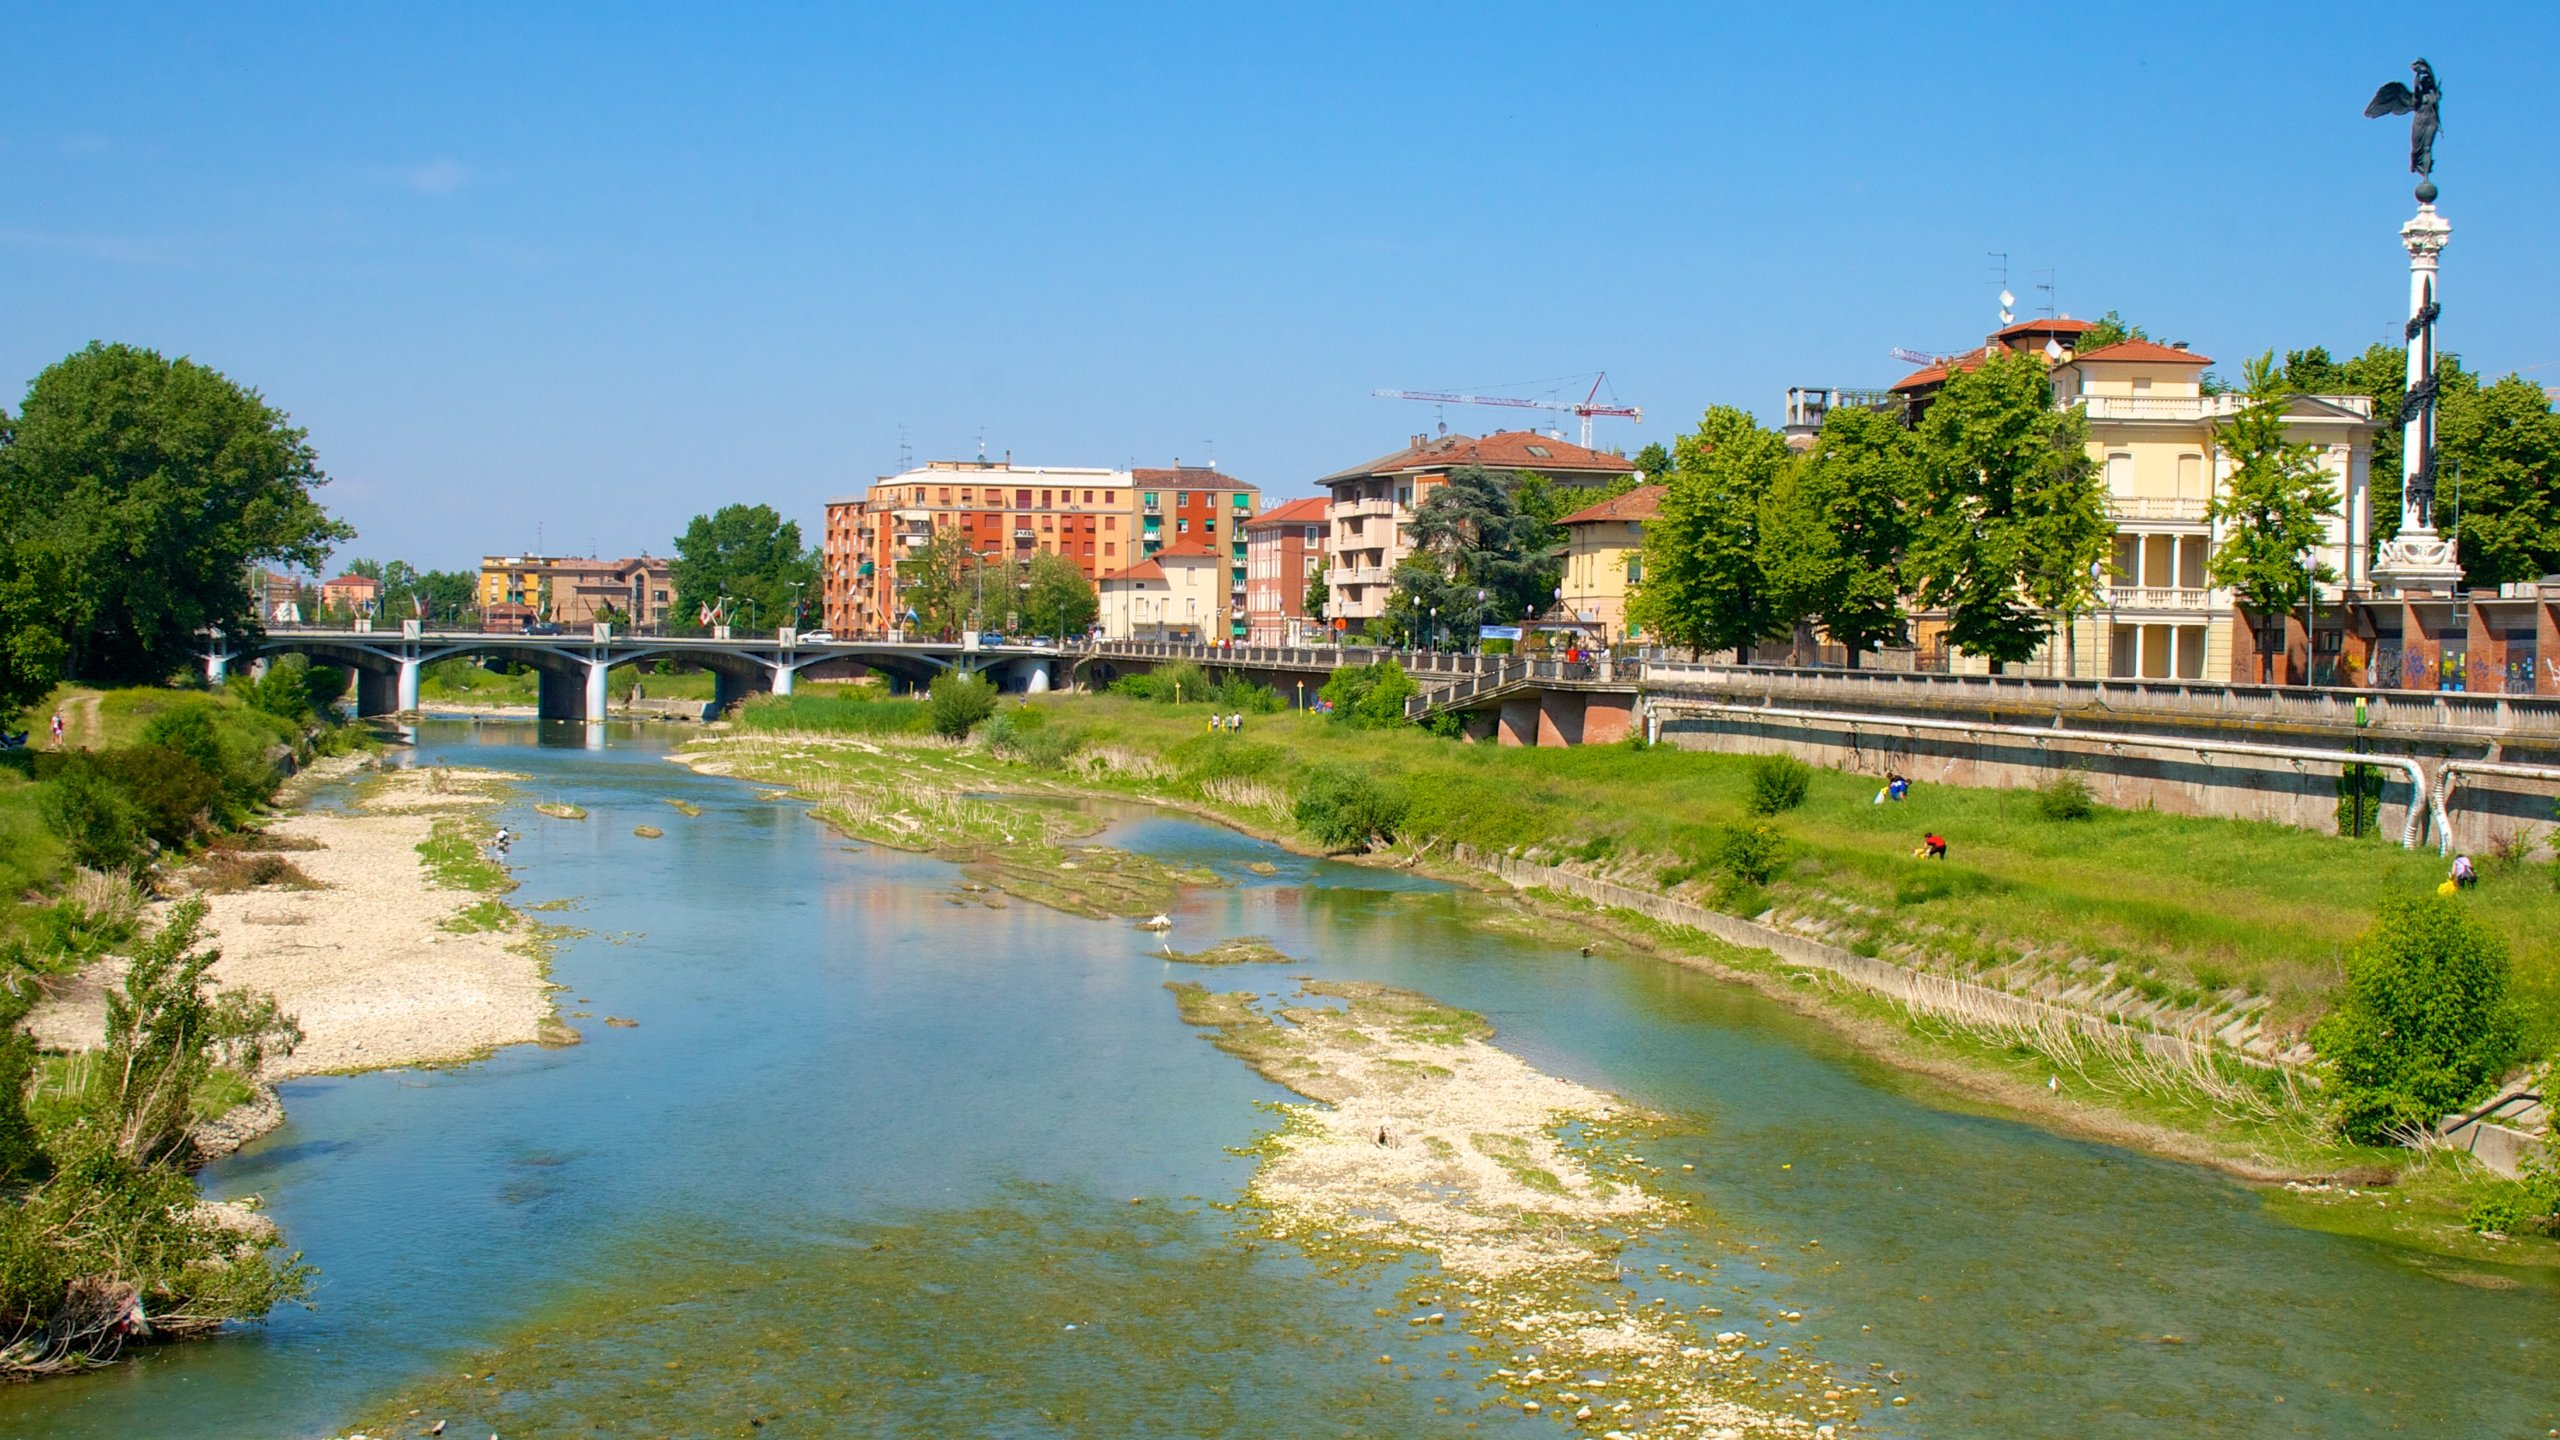 Parma showing a bridge and a river or creek